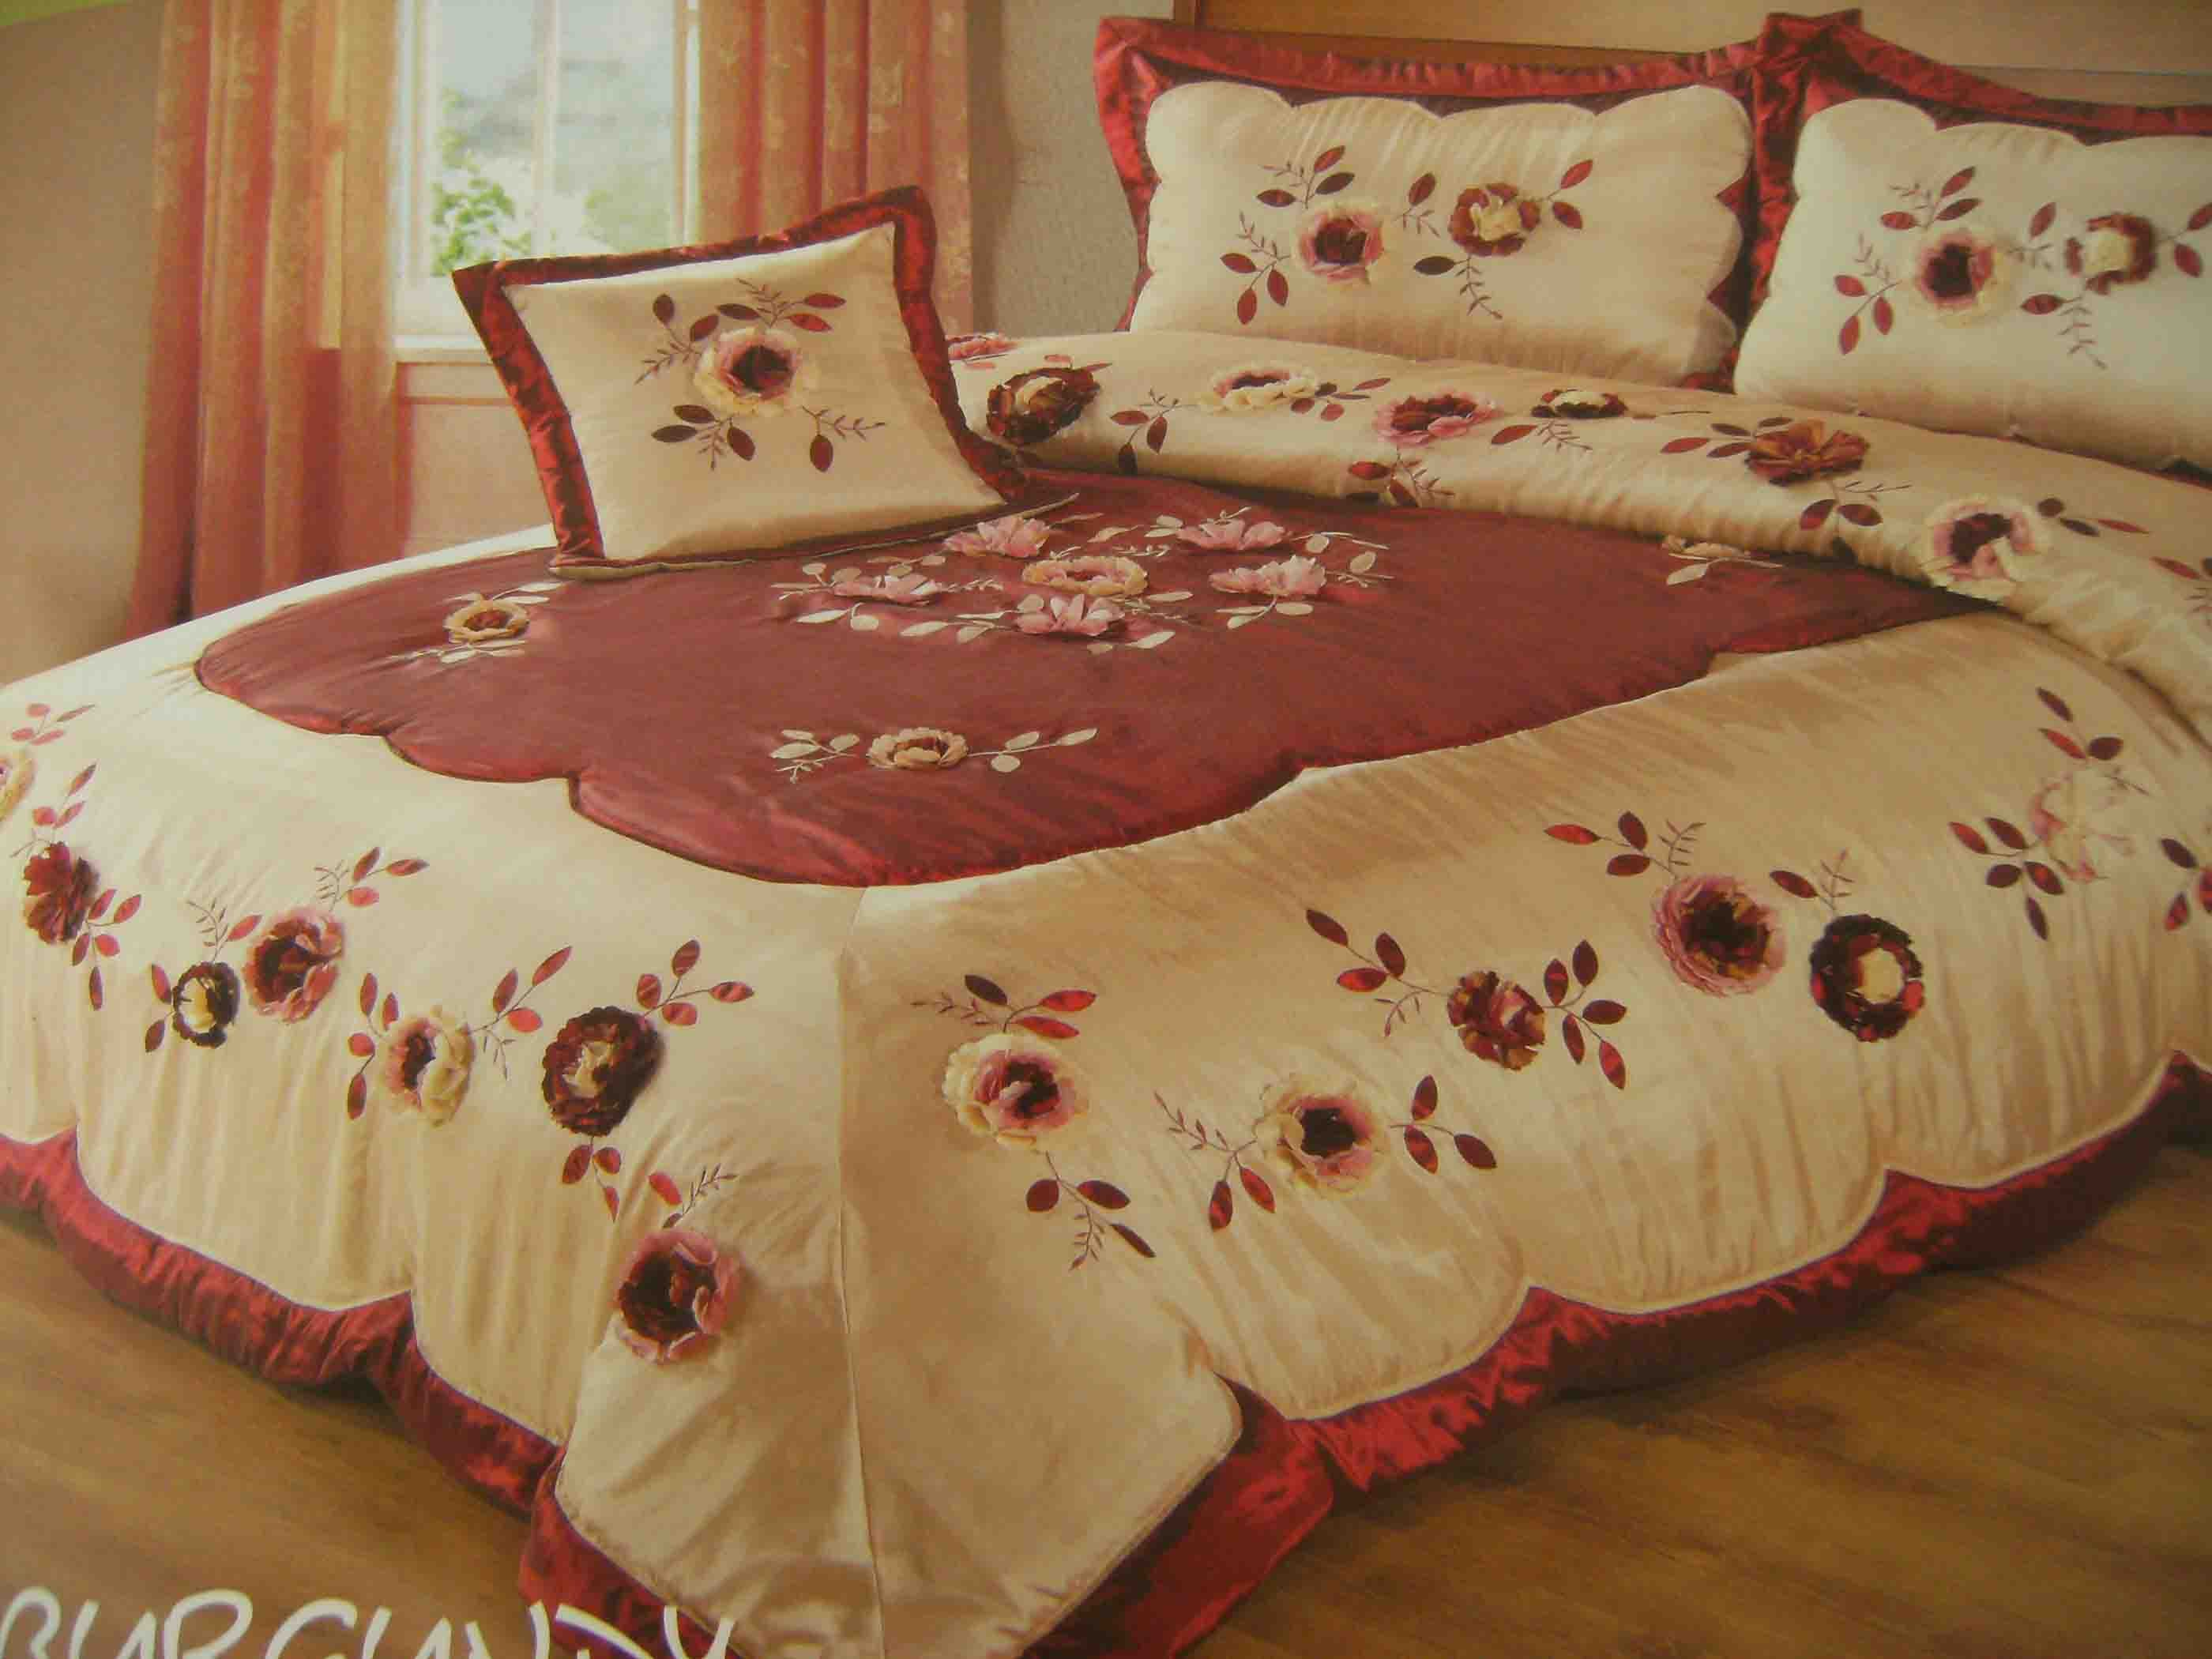 Beautiful Bed beautiful bed cover-in bedding sets from home & garden on